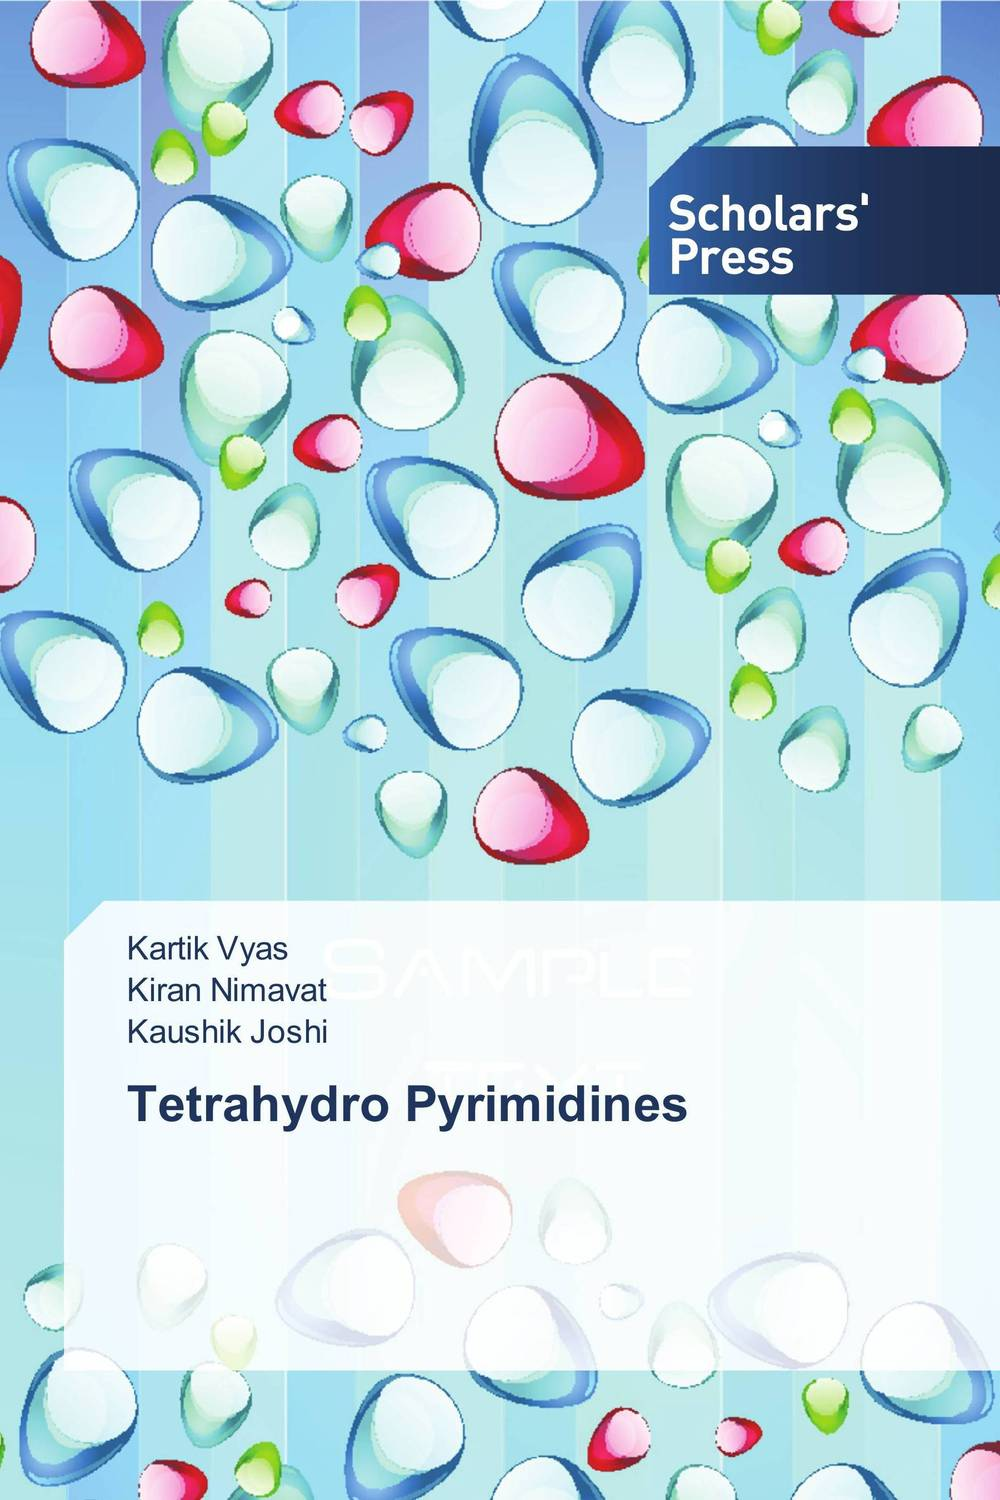 Tetrahydro Pyrimidines multiple aspects of dna and rna from biophysics to bioinformatics session lxxxii